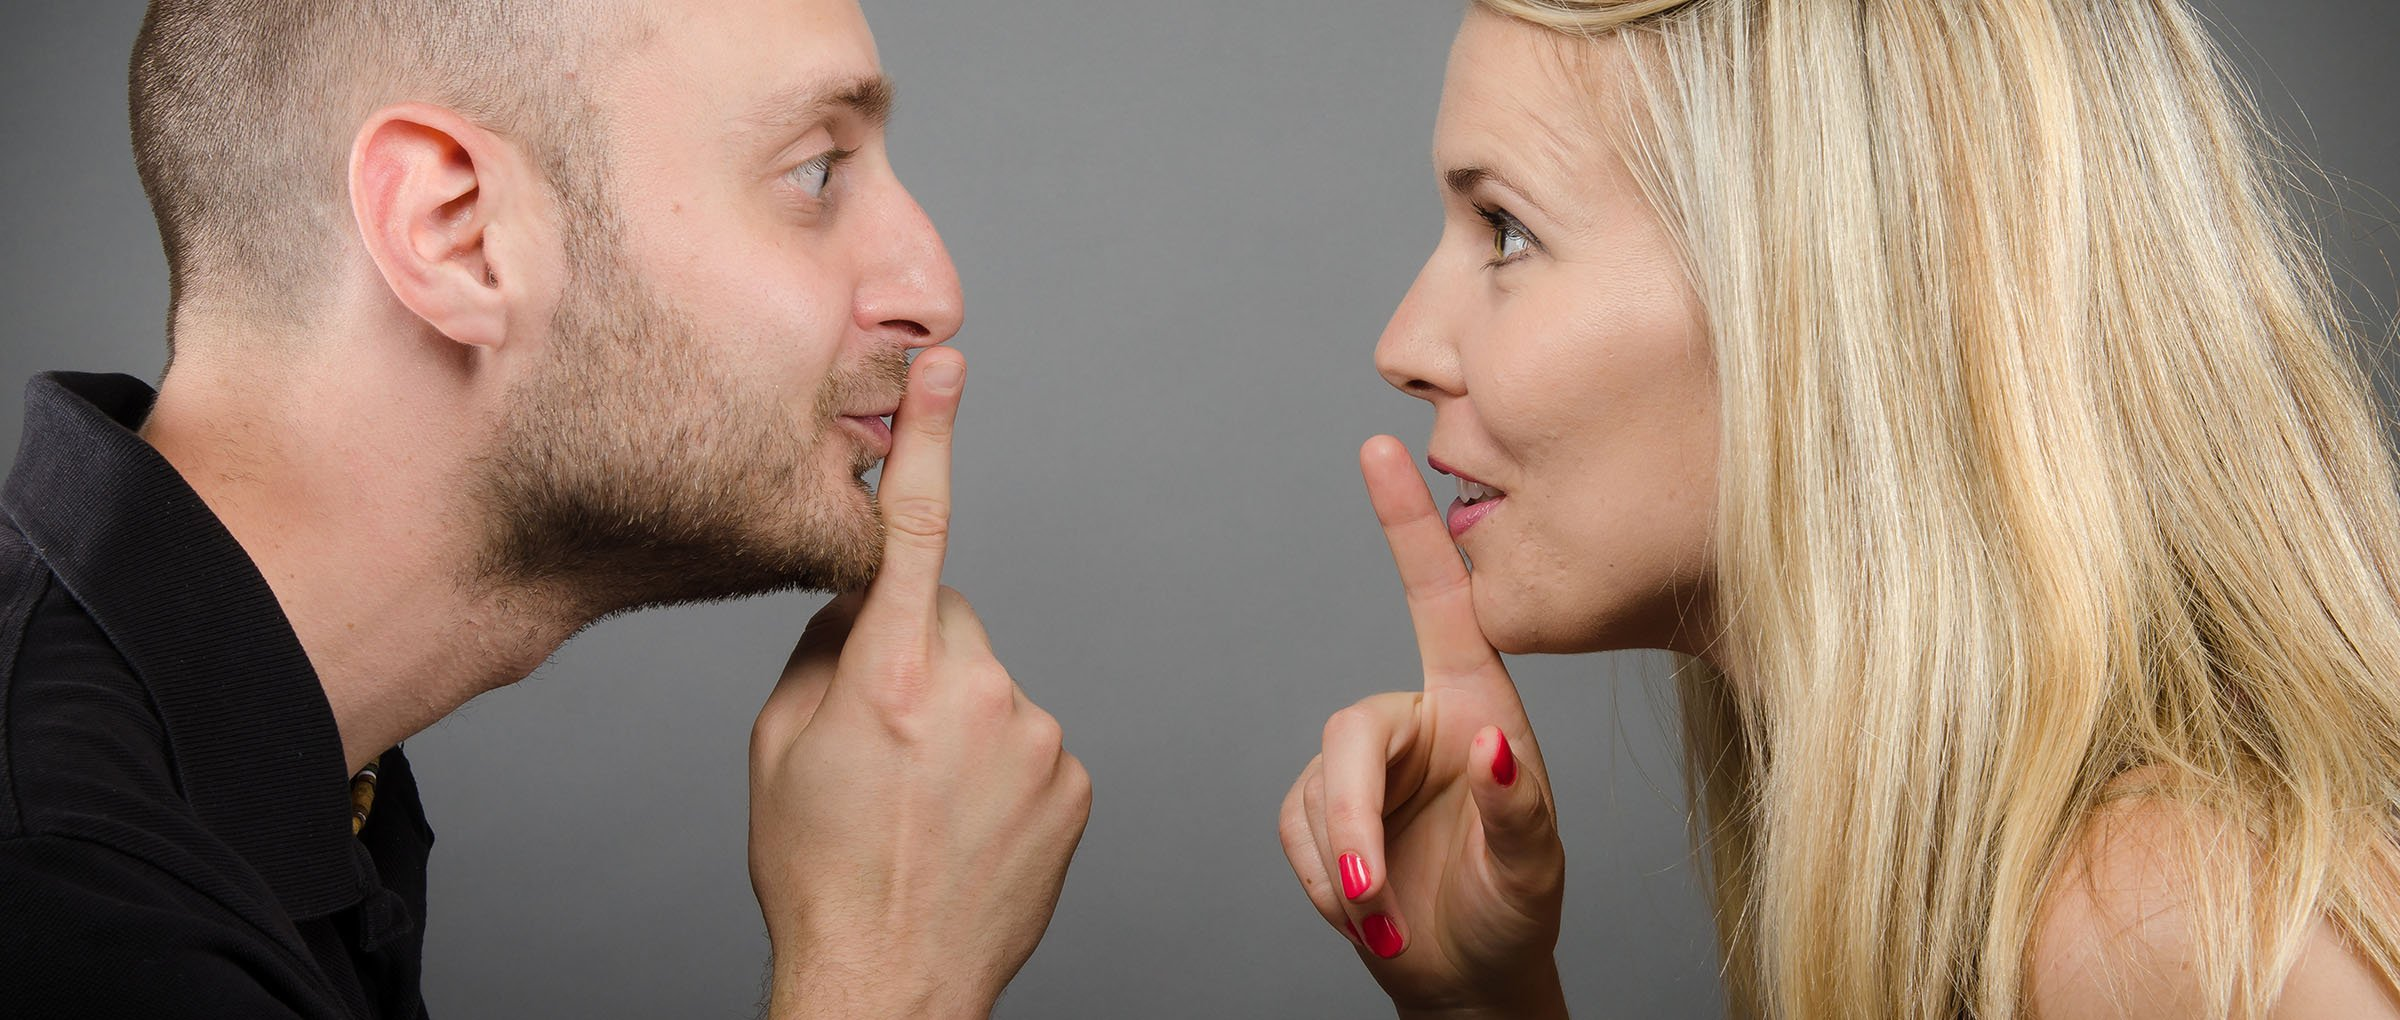 Coping with infertility or keeping it a secret?